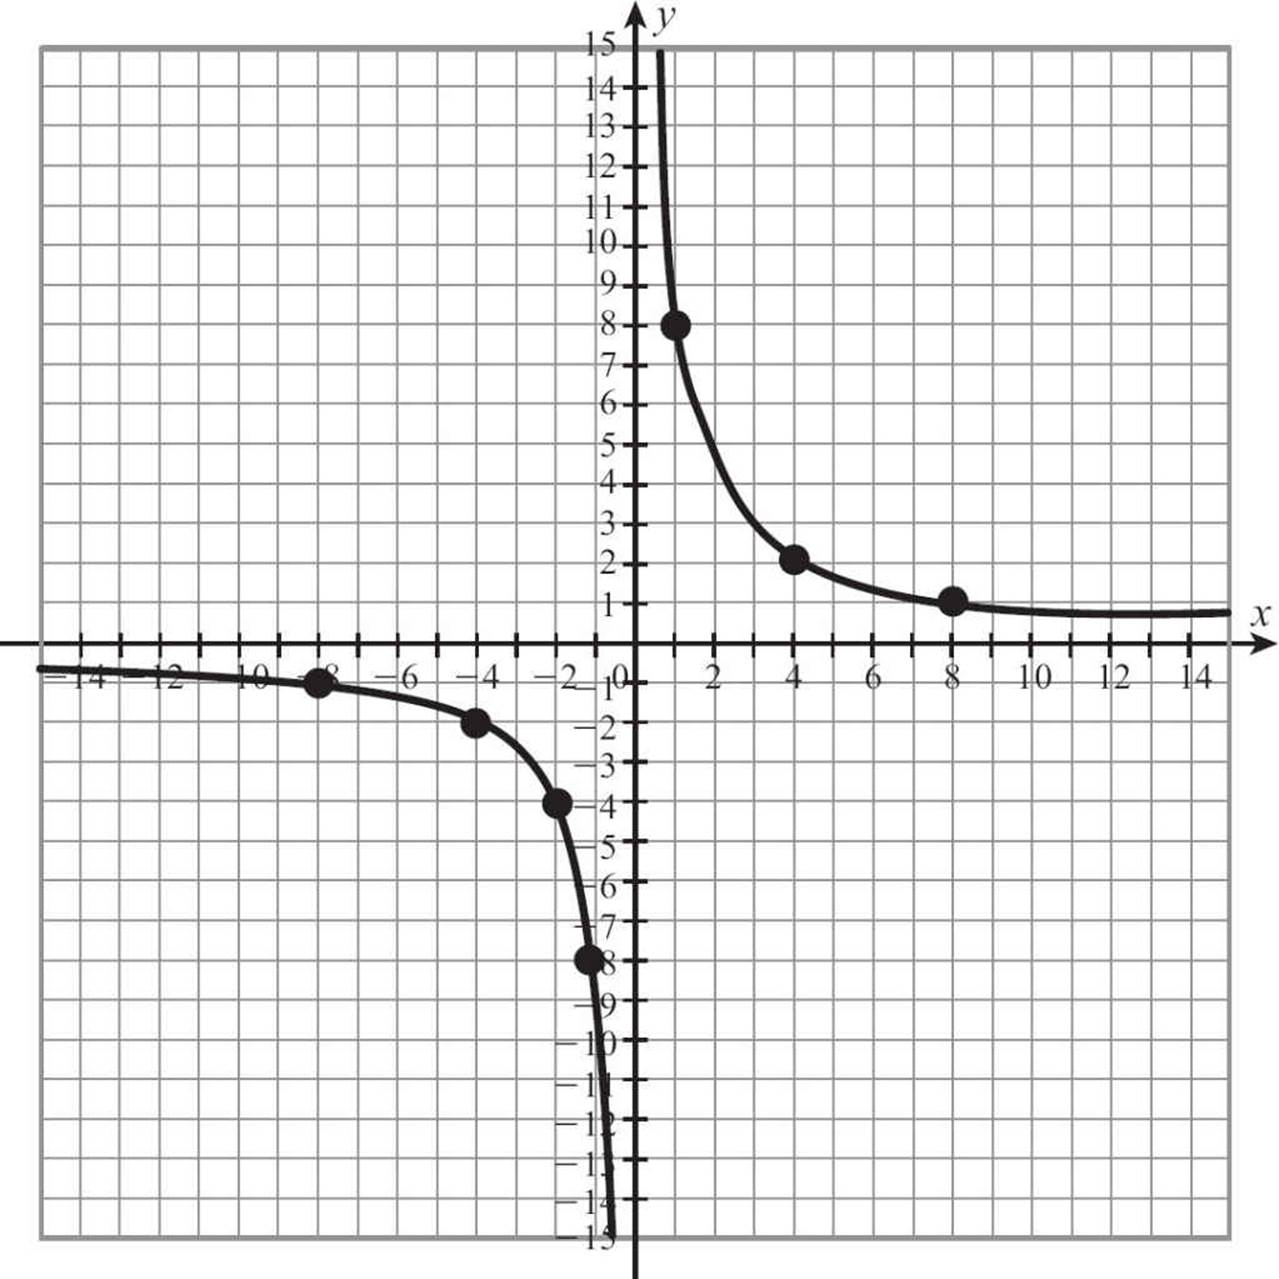 worksheet X And Y Graph Paper graph paper for algebra prime factorization tree using a ruler math with x and y axis clock face image690 x